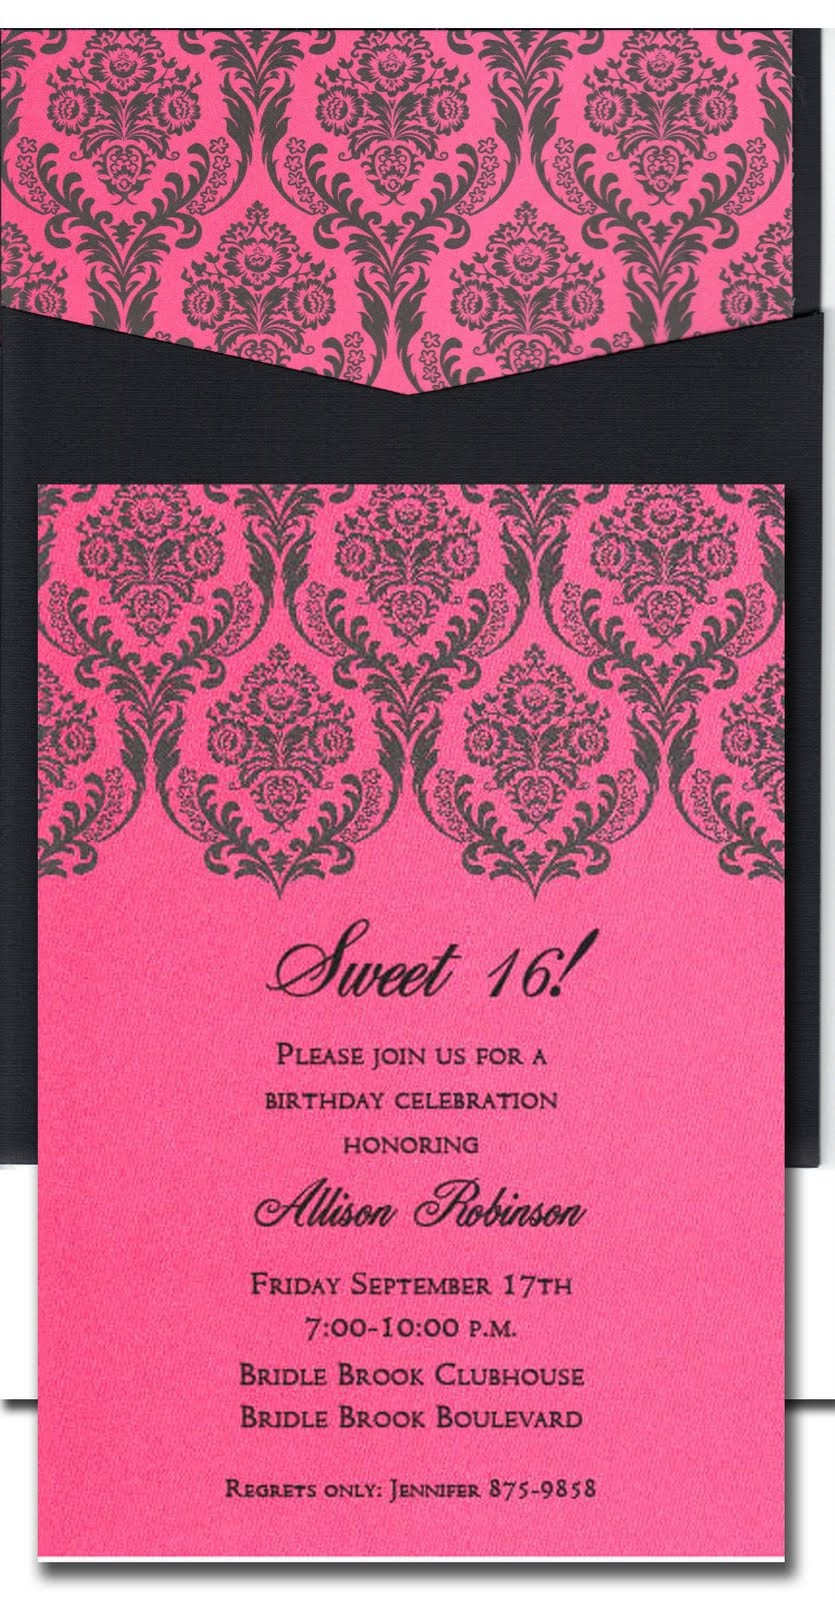 Costco Wedding Invitations